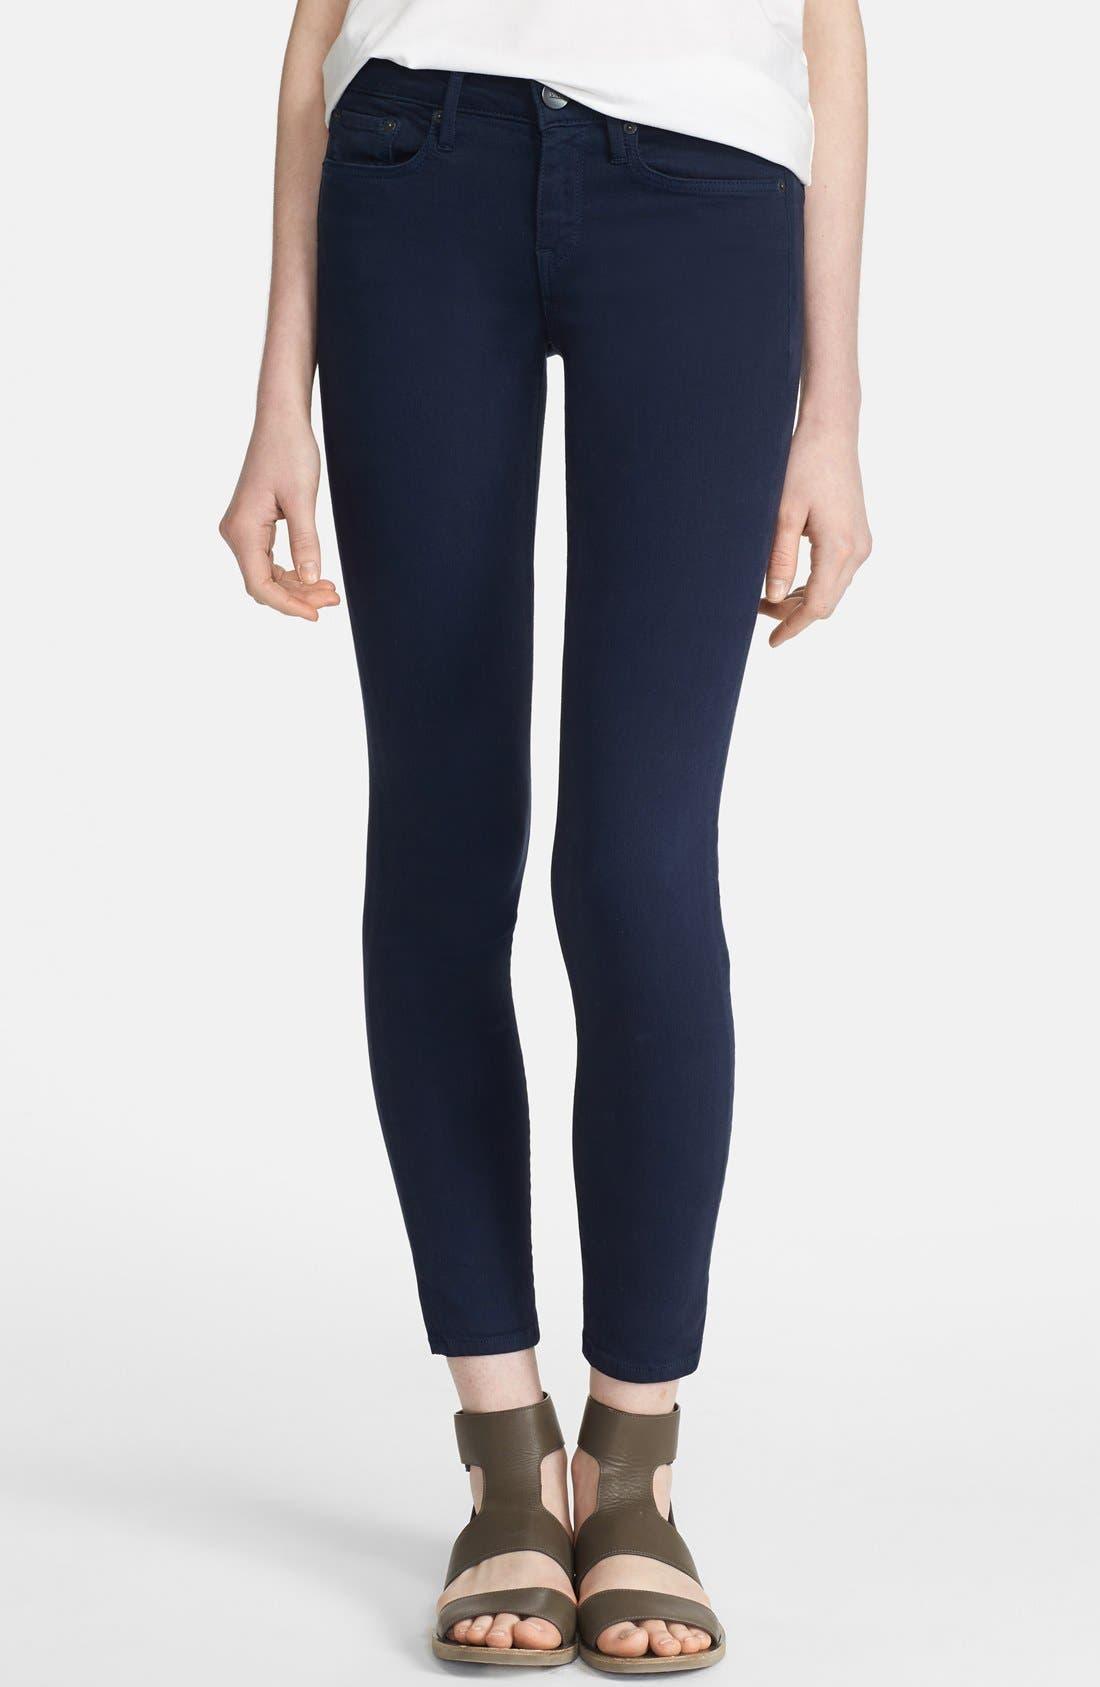 Alternate Image 1 Selected - Vince Colored Ankle Stretch Skinny Jeans